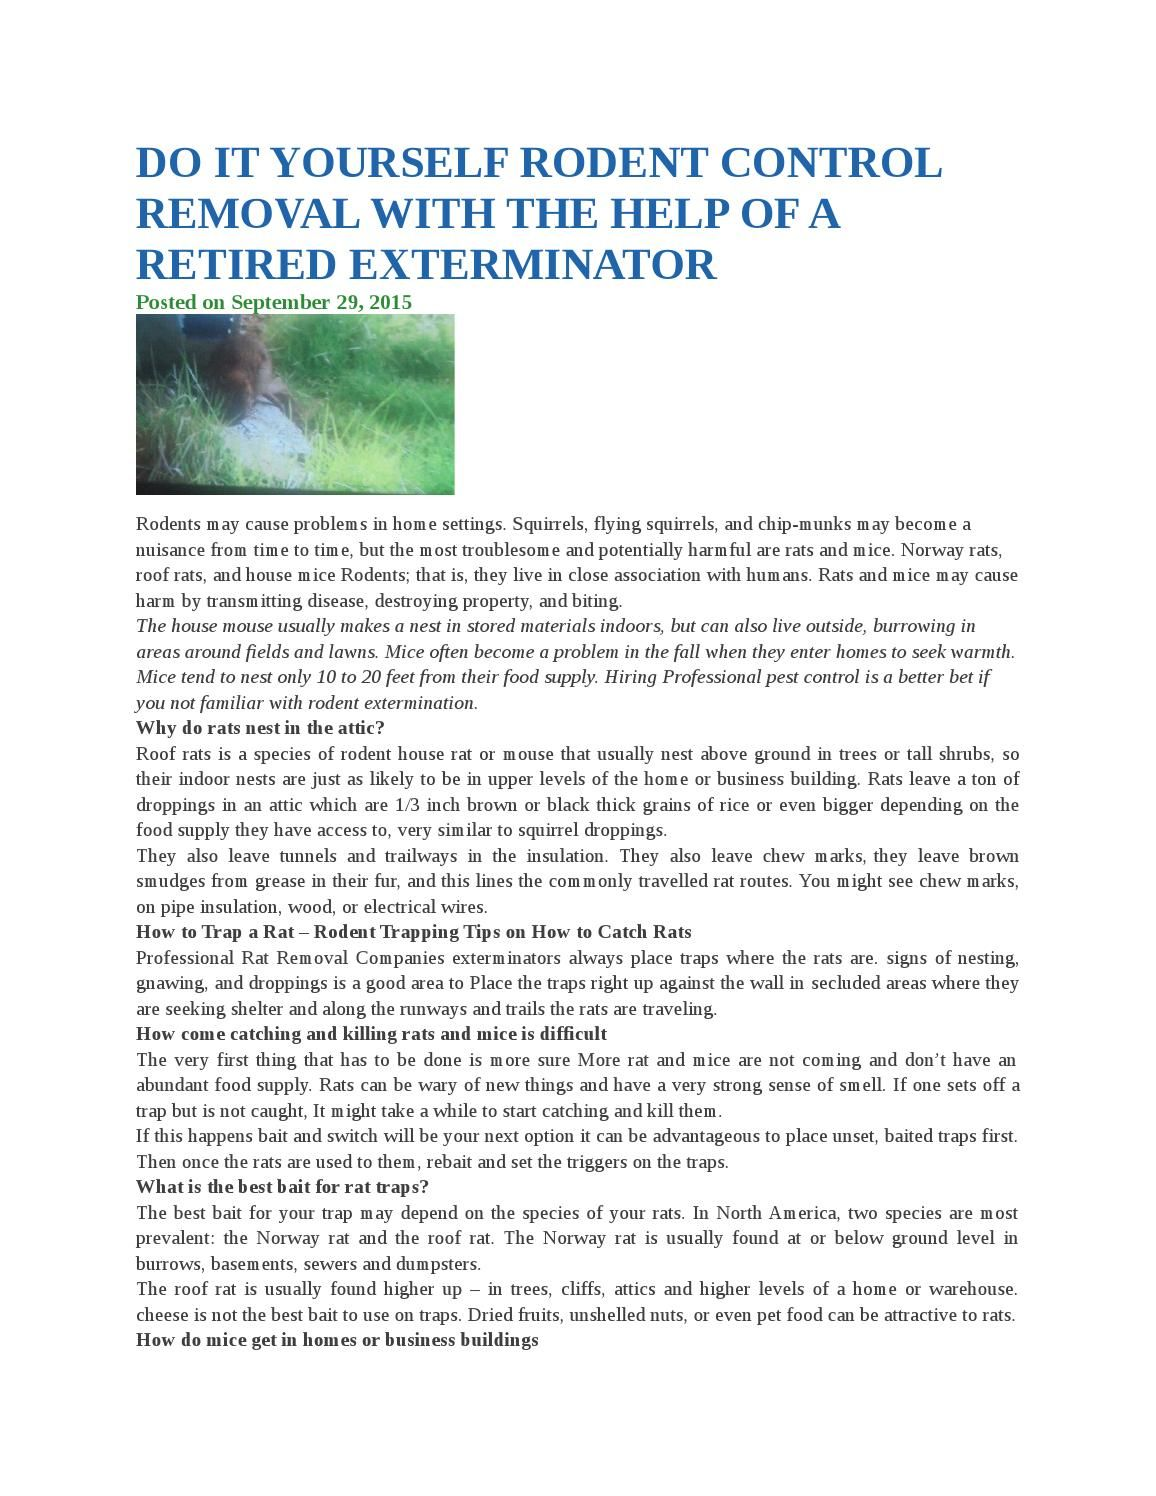 Do it yourself rodent control removal with the help of a